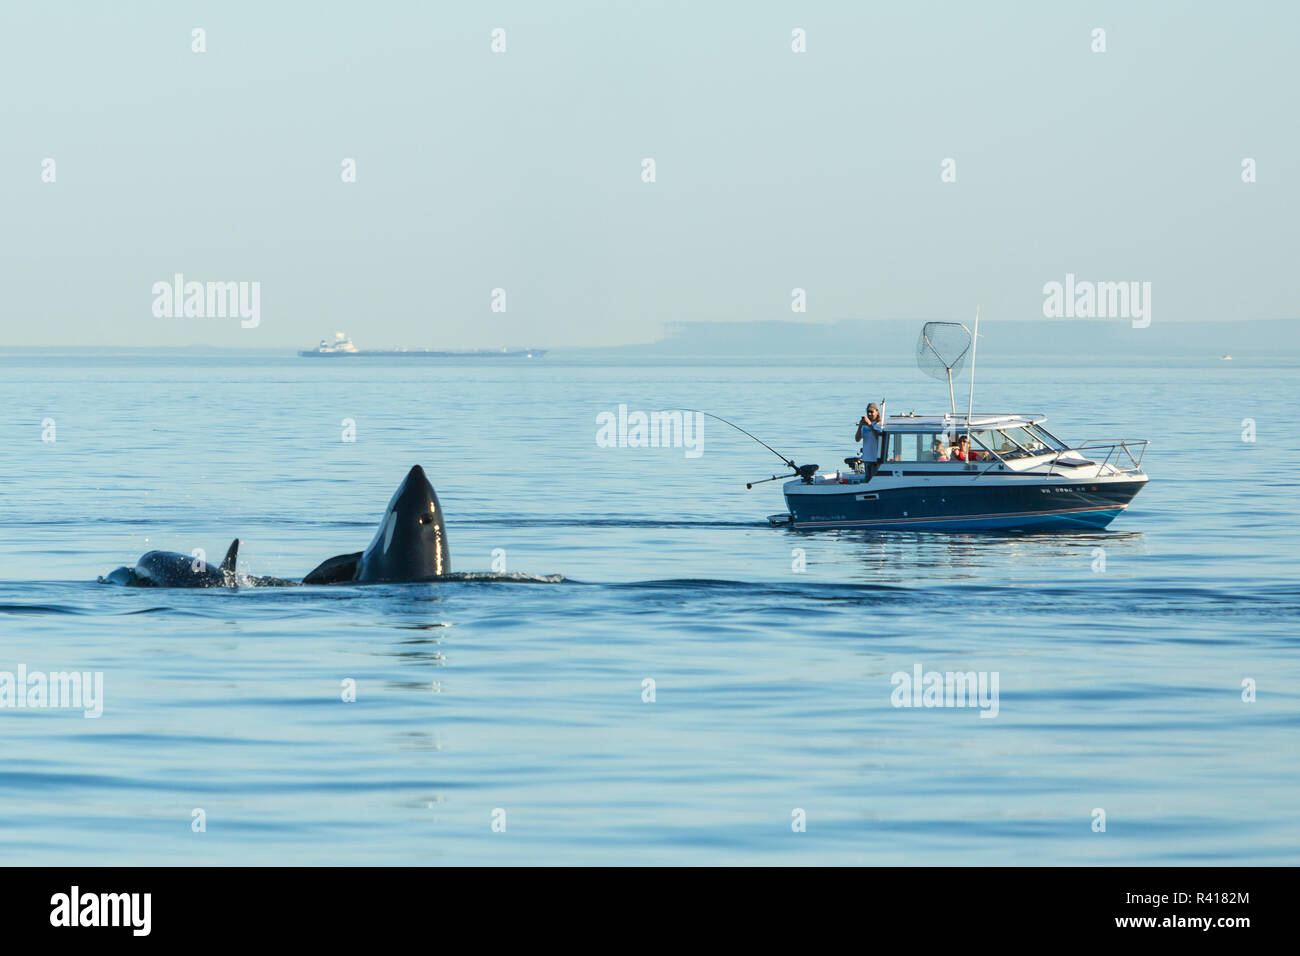 Spyhopping orca near Fishing Boat from Pod of resident Orca Whales (Orcinus orca) in Haro Strait near San Juan Island, Washington State, USA - Stock Image